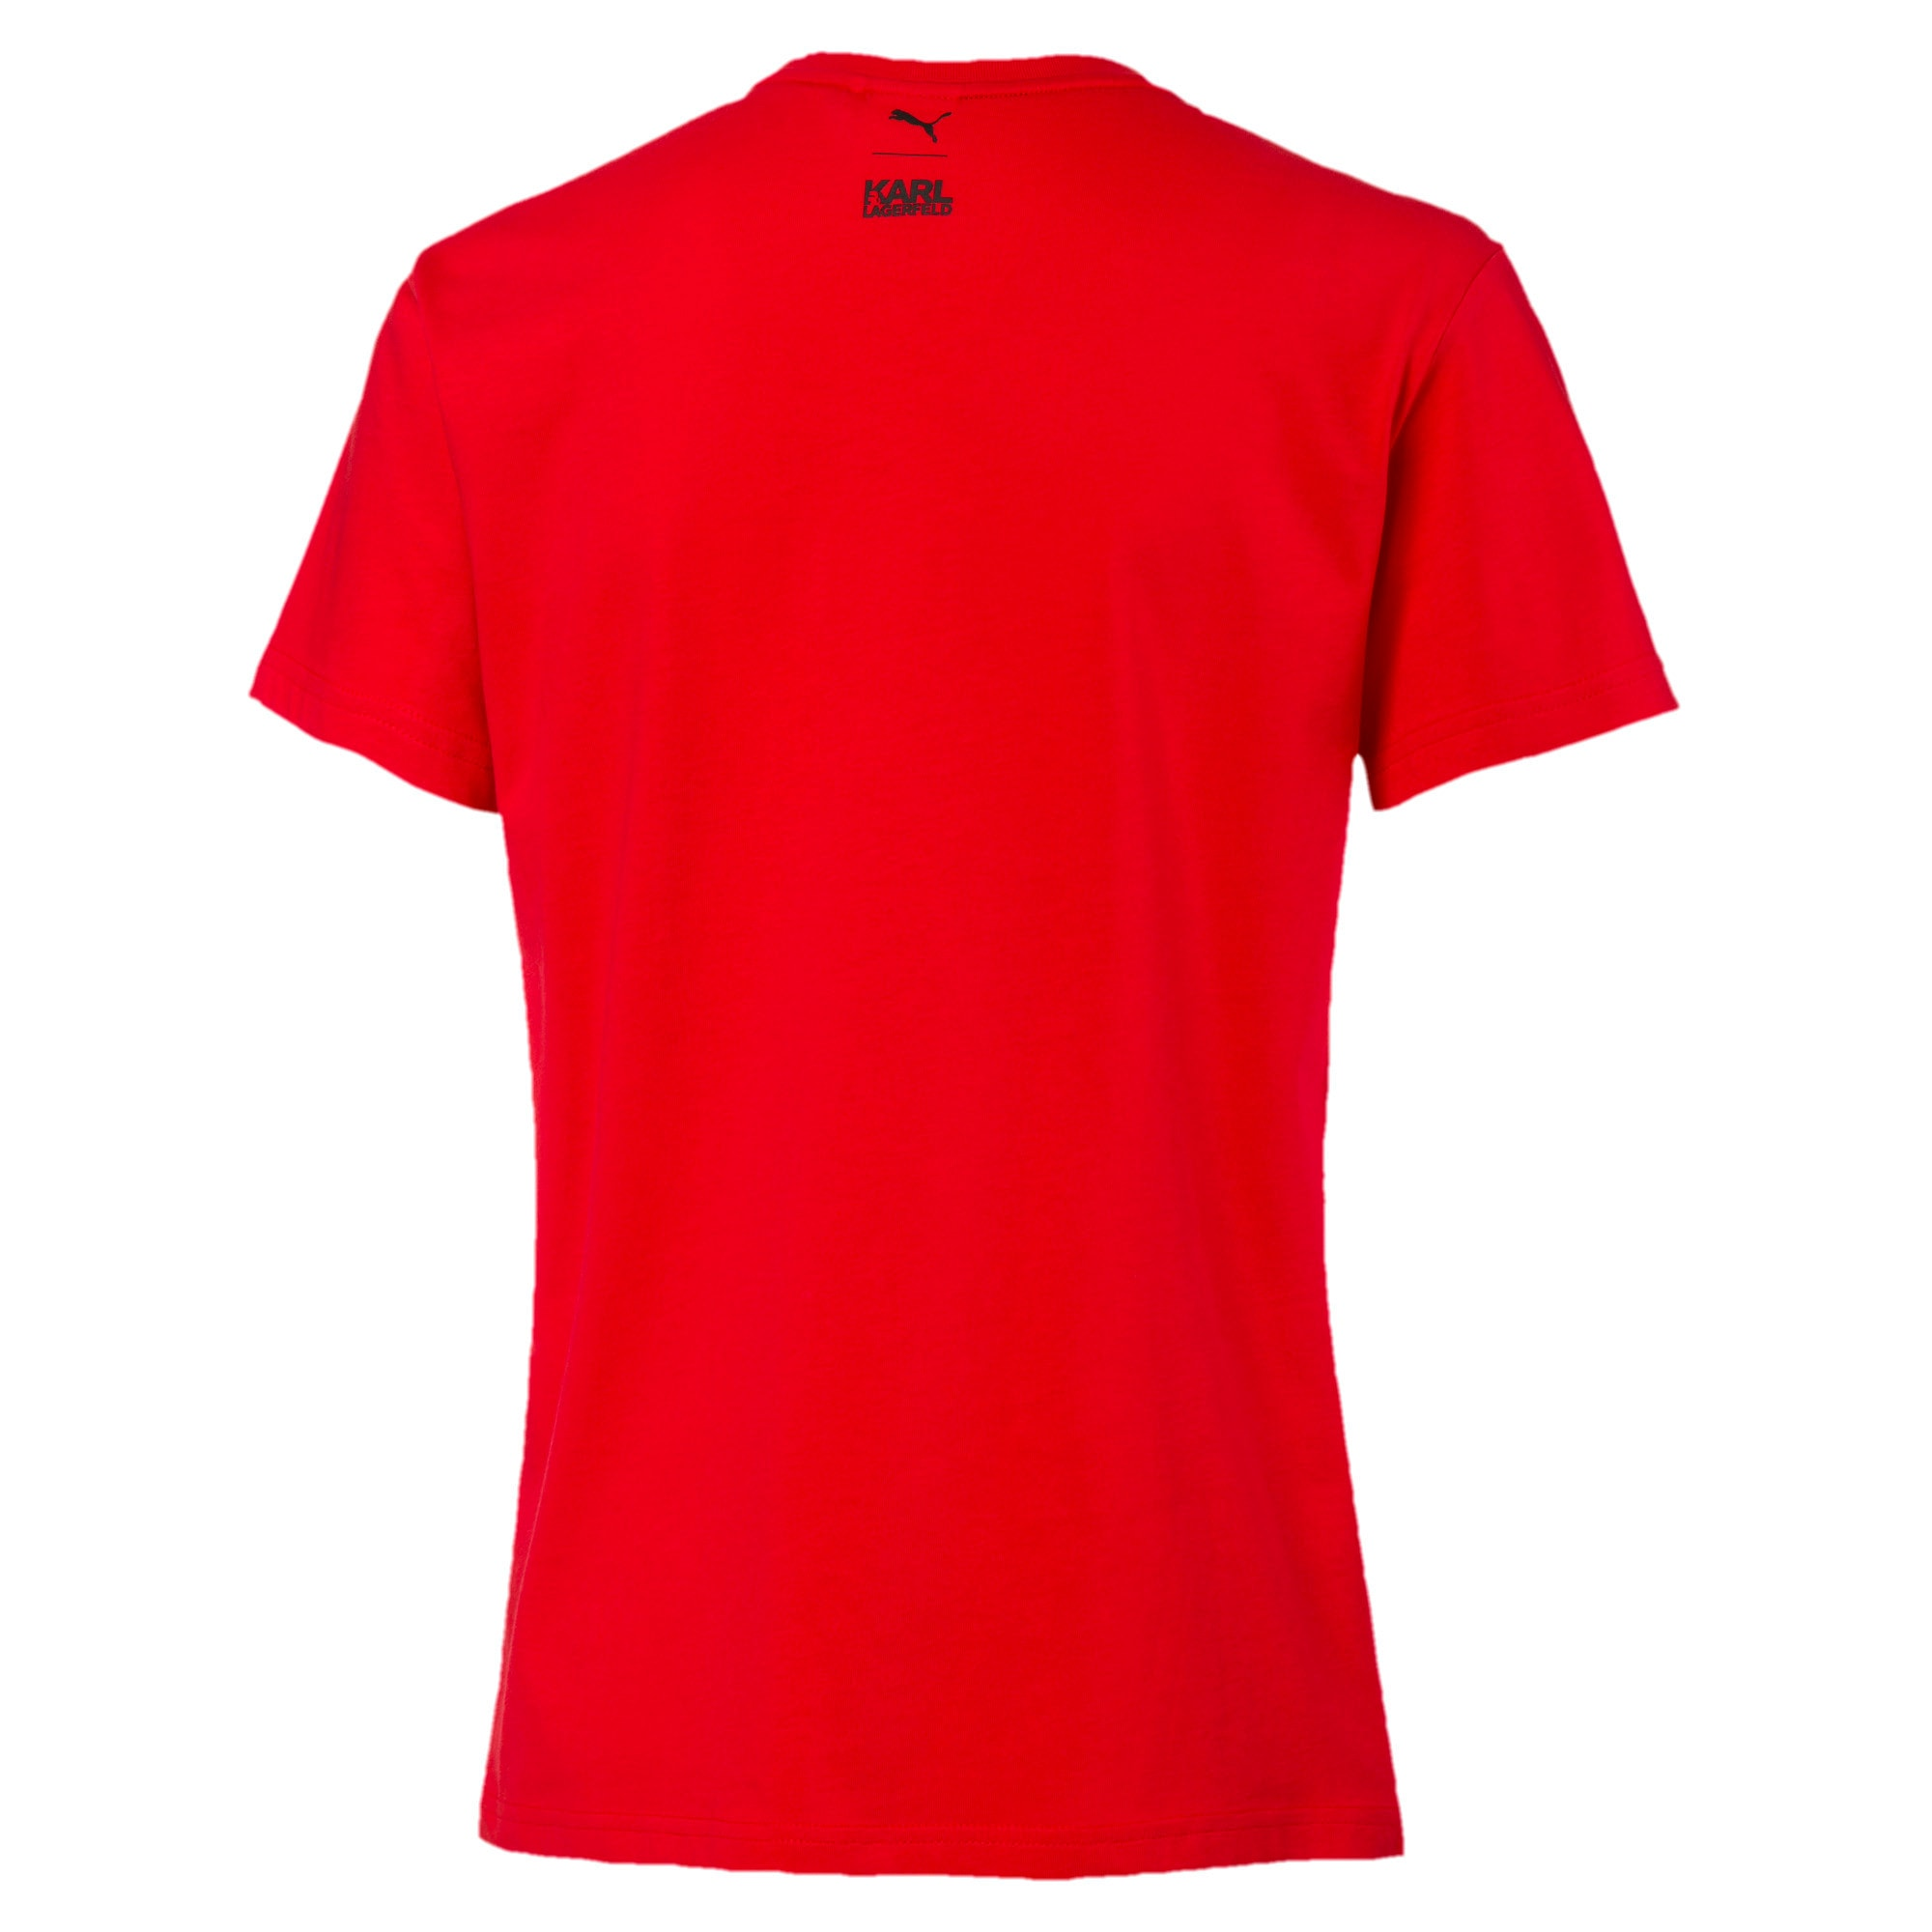 PUMA x KARL LAGERFELD Damen T-Shirt, High Risk Red, large